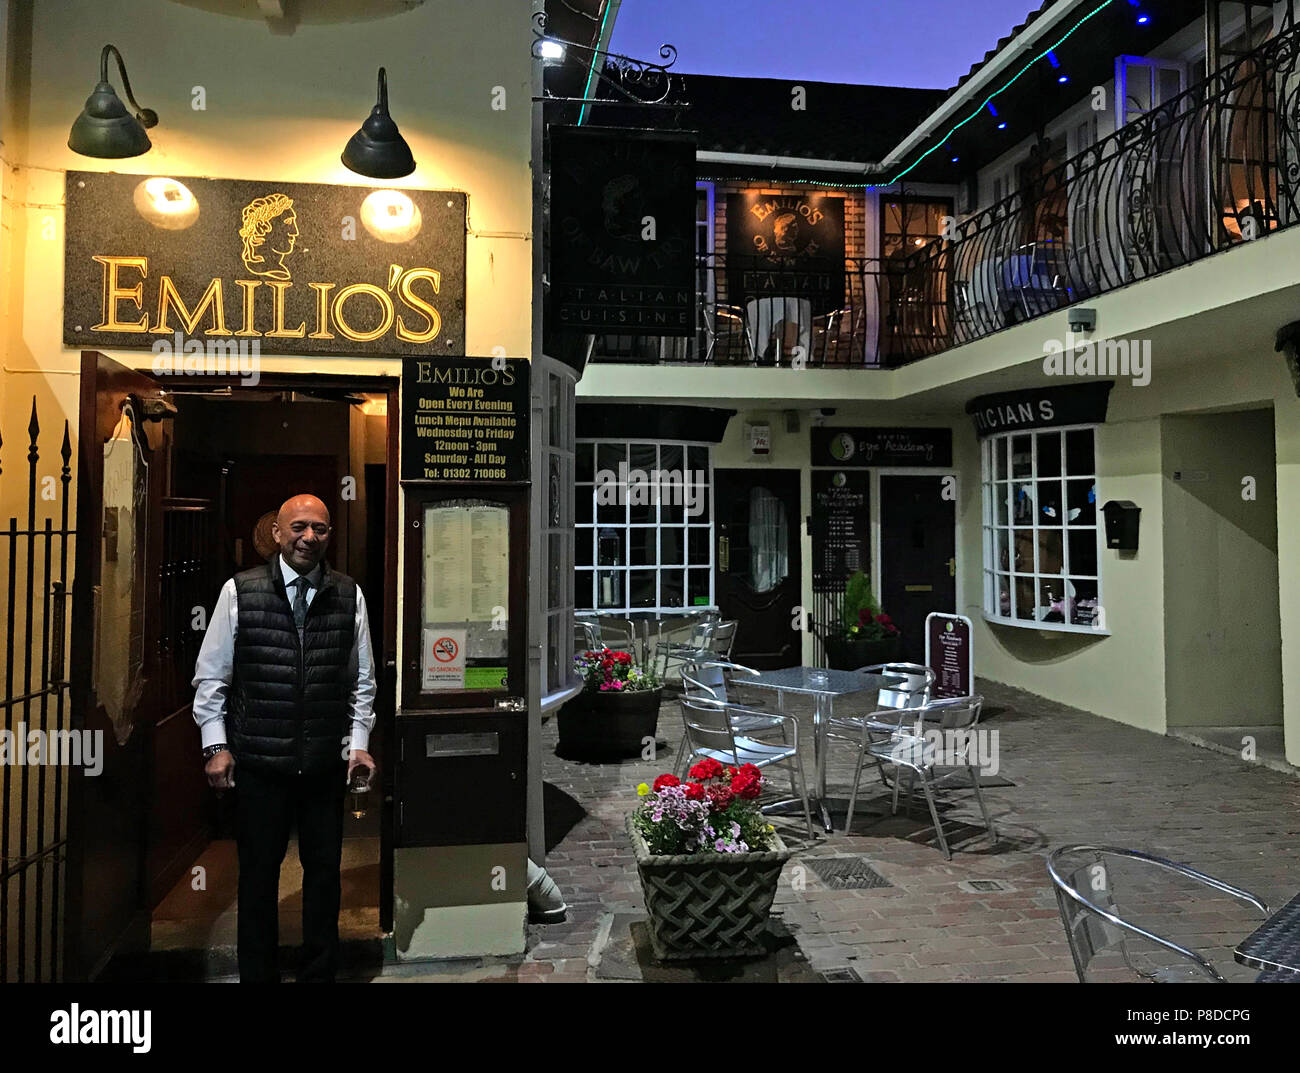 @HotpixUK,GoTonySmith,South,Yorkshire,England,UK,Bawtry,market town,market,town,Emilio,DN10,DN10 6LS,at dusk,dusk,evening,in the evening,Roman,1992,cuisine,local,eating,place,outside,tables outside,tables,chairs,al-fresco,al fresco,alfresco